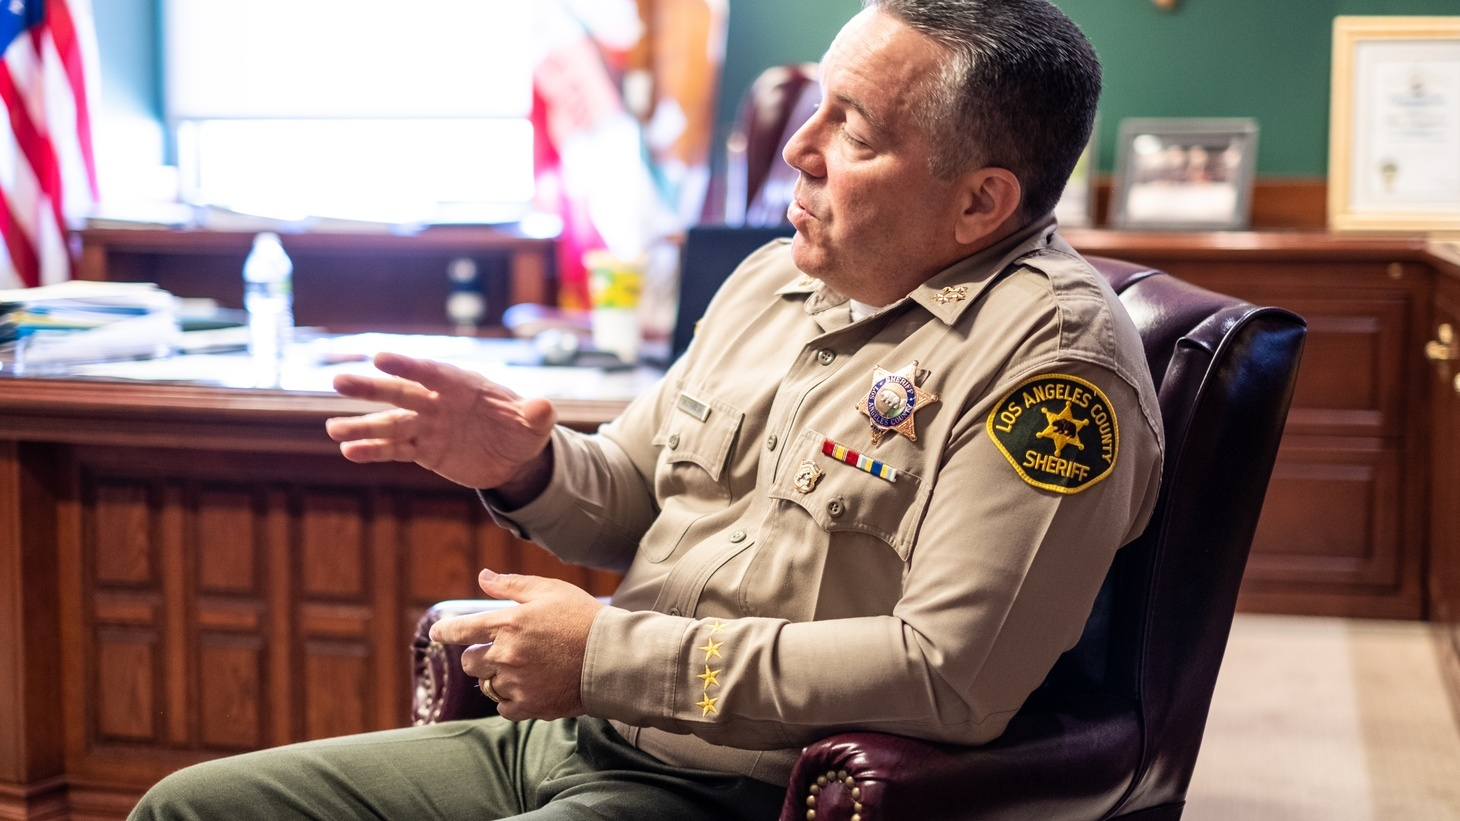 """LA County supervisors Mark Ridley-Thomas and Sheila Kuehl are calling on Sheriff Alex Villanueva to resign. Villanueva says """"I'm just going to ignore it and move on,"""" according to the LA Times."""